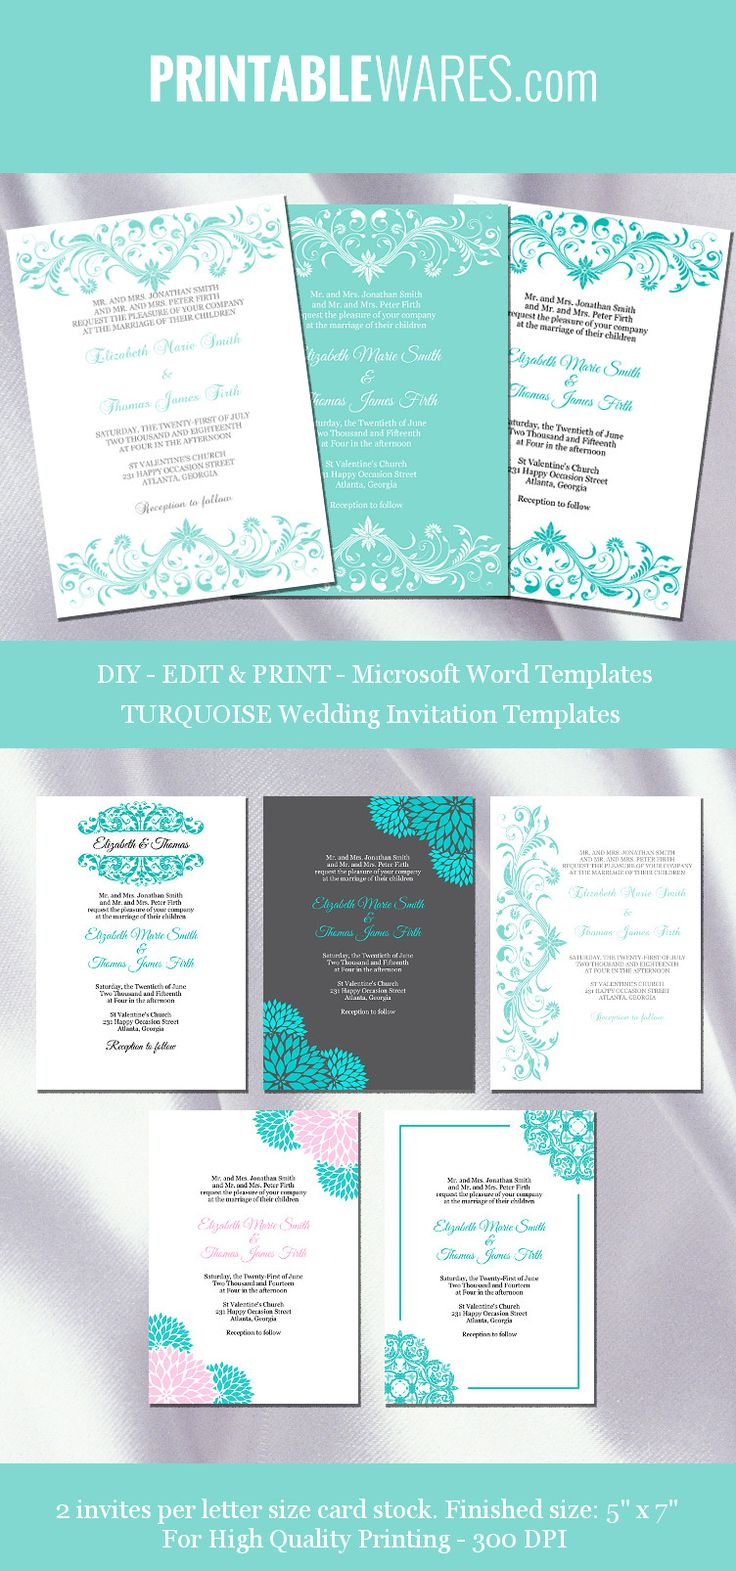 Turquoise Wedding Invitation Templates